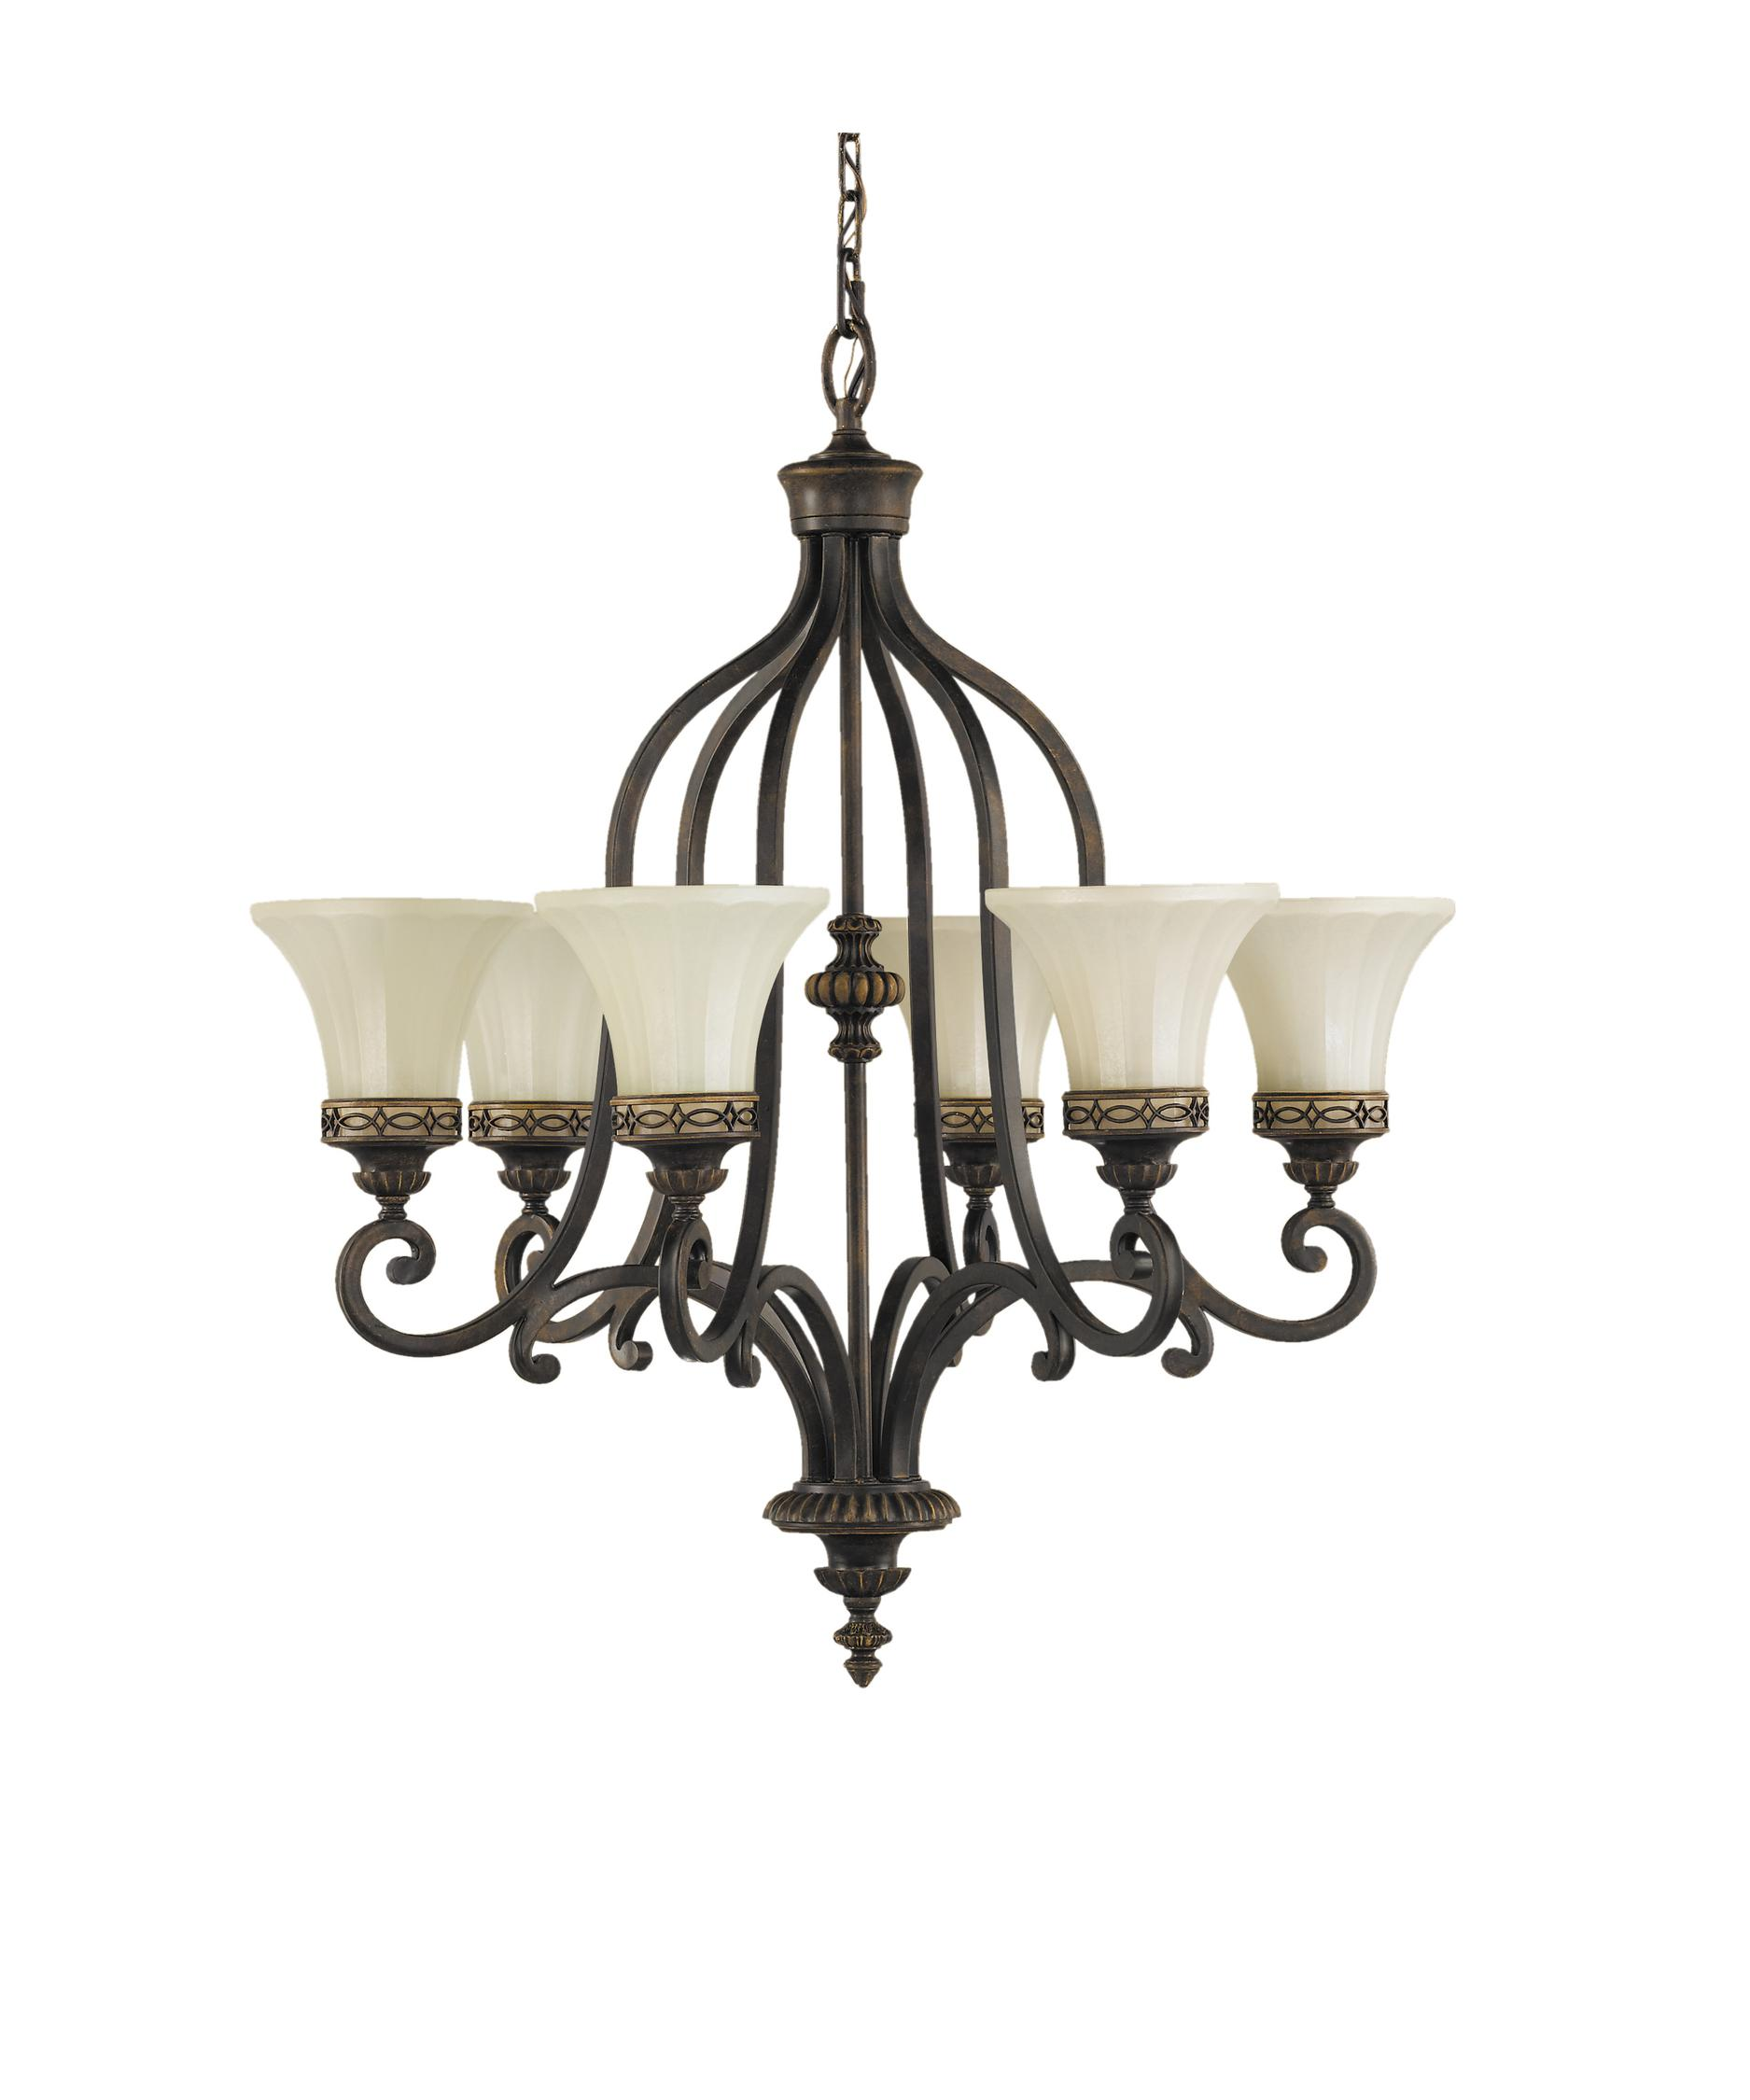 Murray Feiss Drawing Room 28 Inch Wide 6 Light Chandelier – Murray Feiss Chandeliers